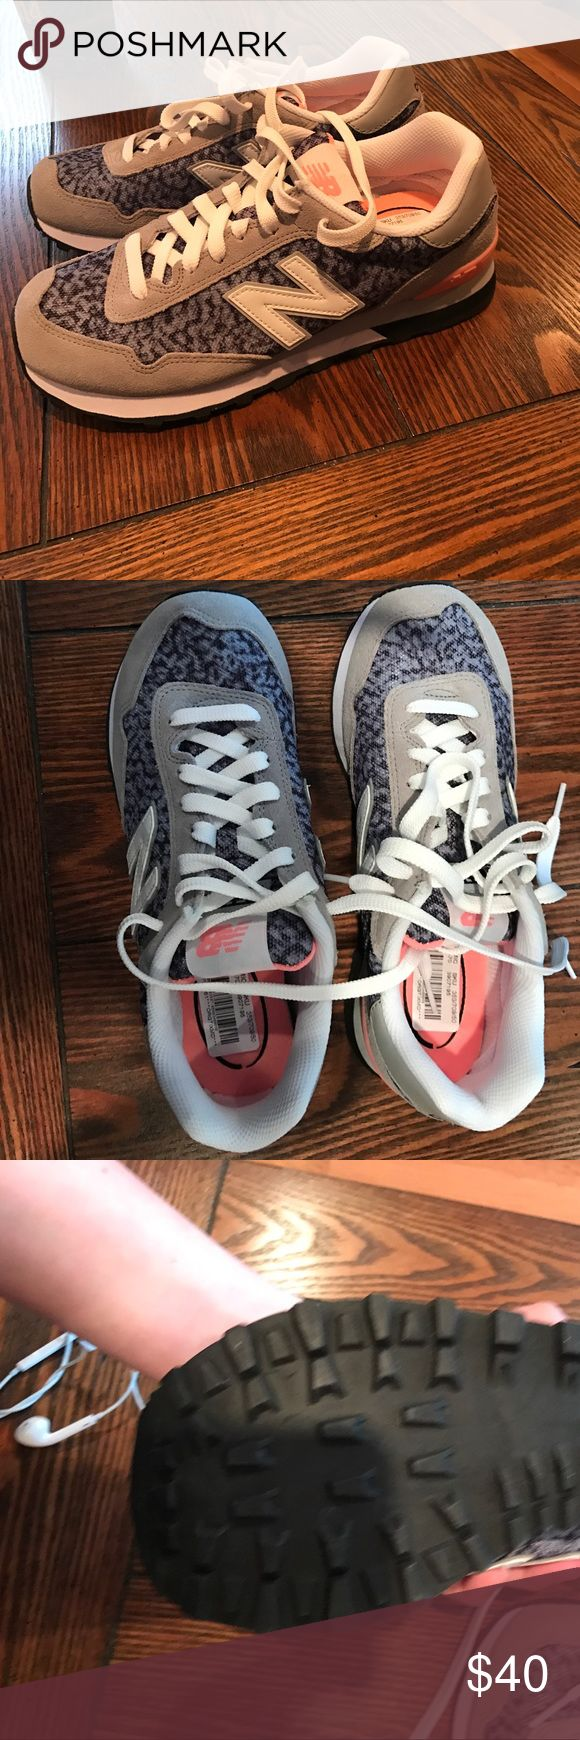 New balance shoes Great comfy shoes in style right now! New Balance Shoes